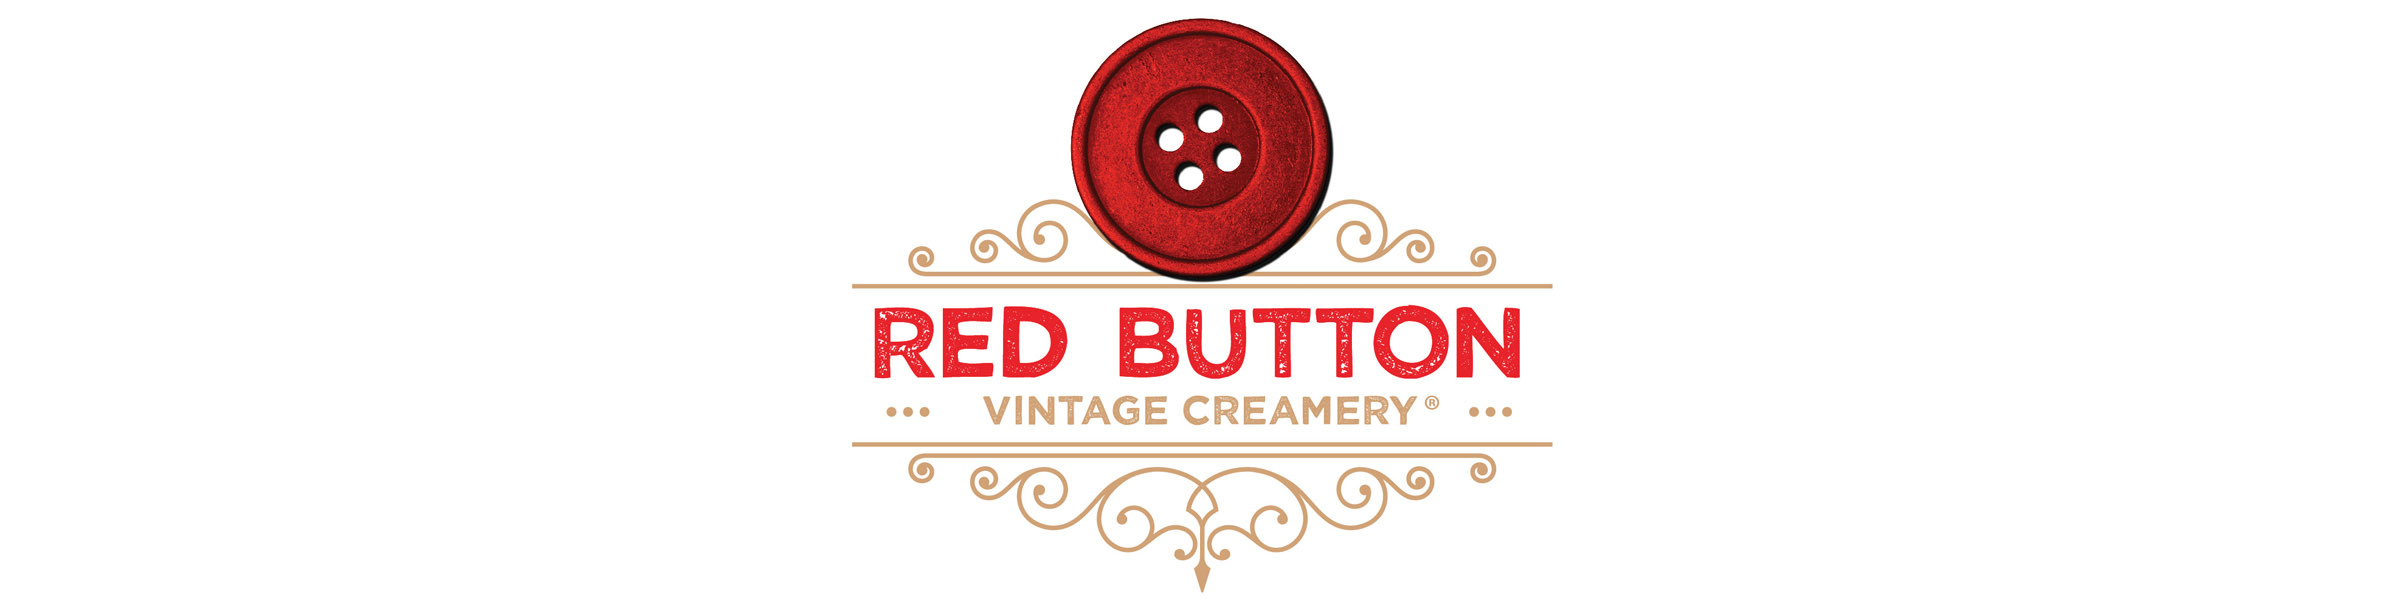 Red Button Vintage Creamery Pies